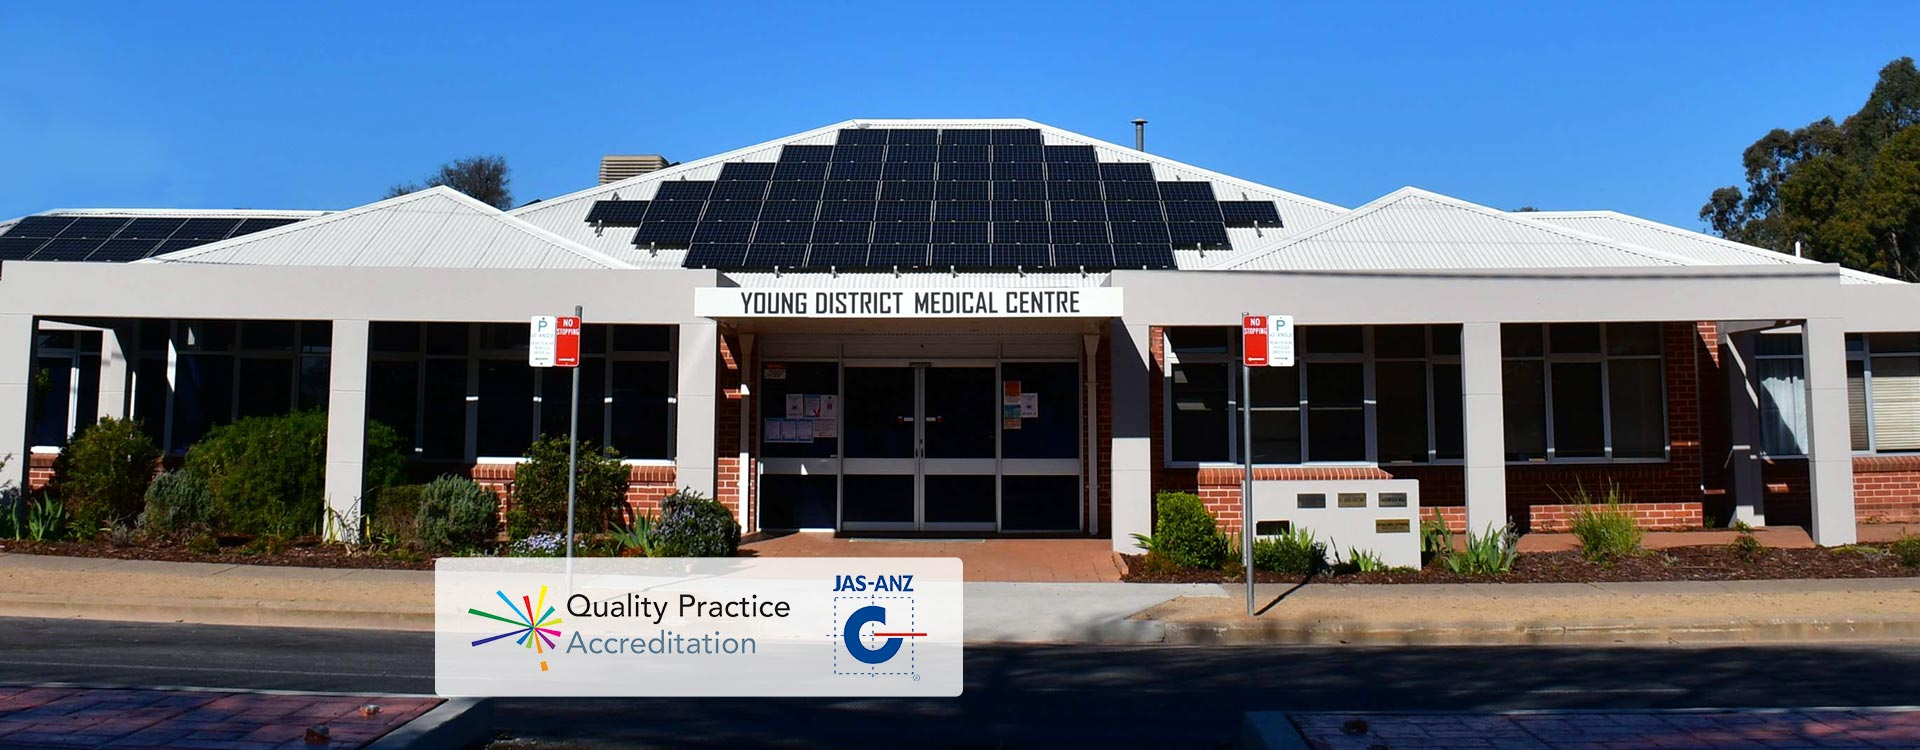 Young District Medical Centre